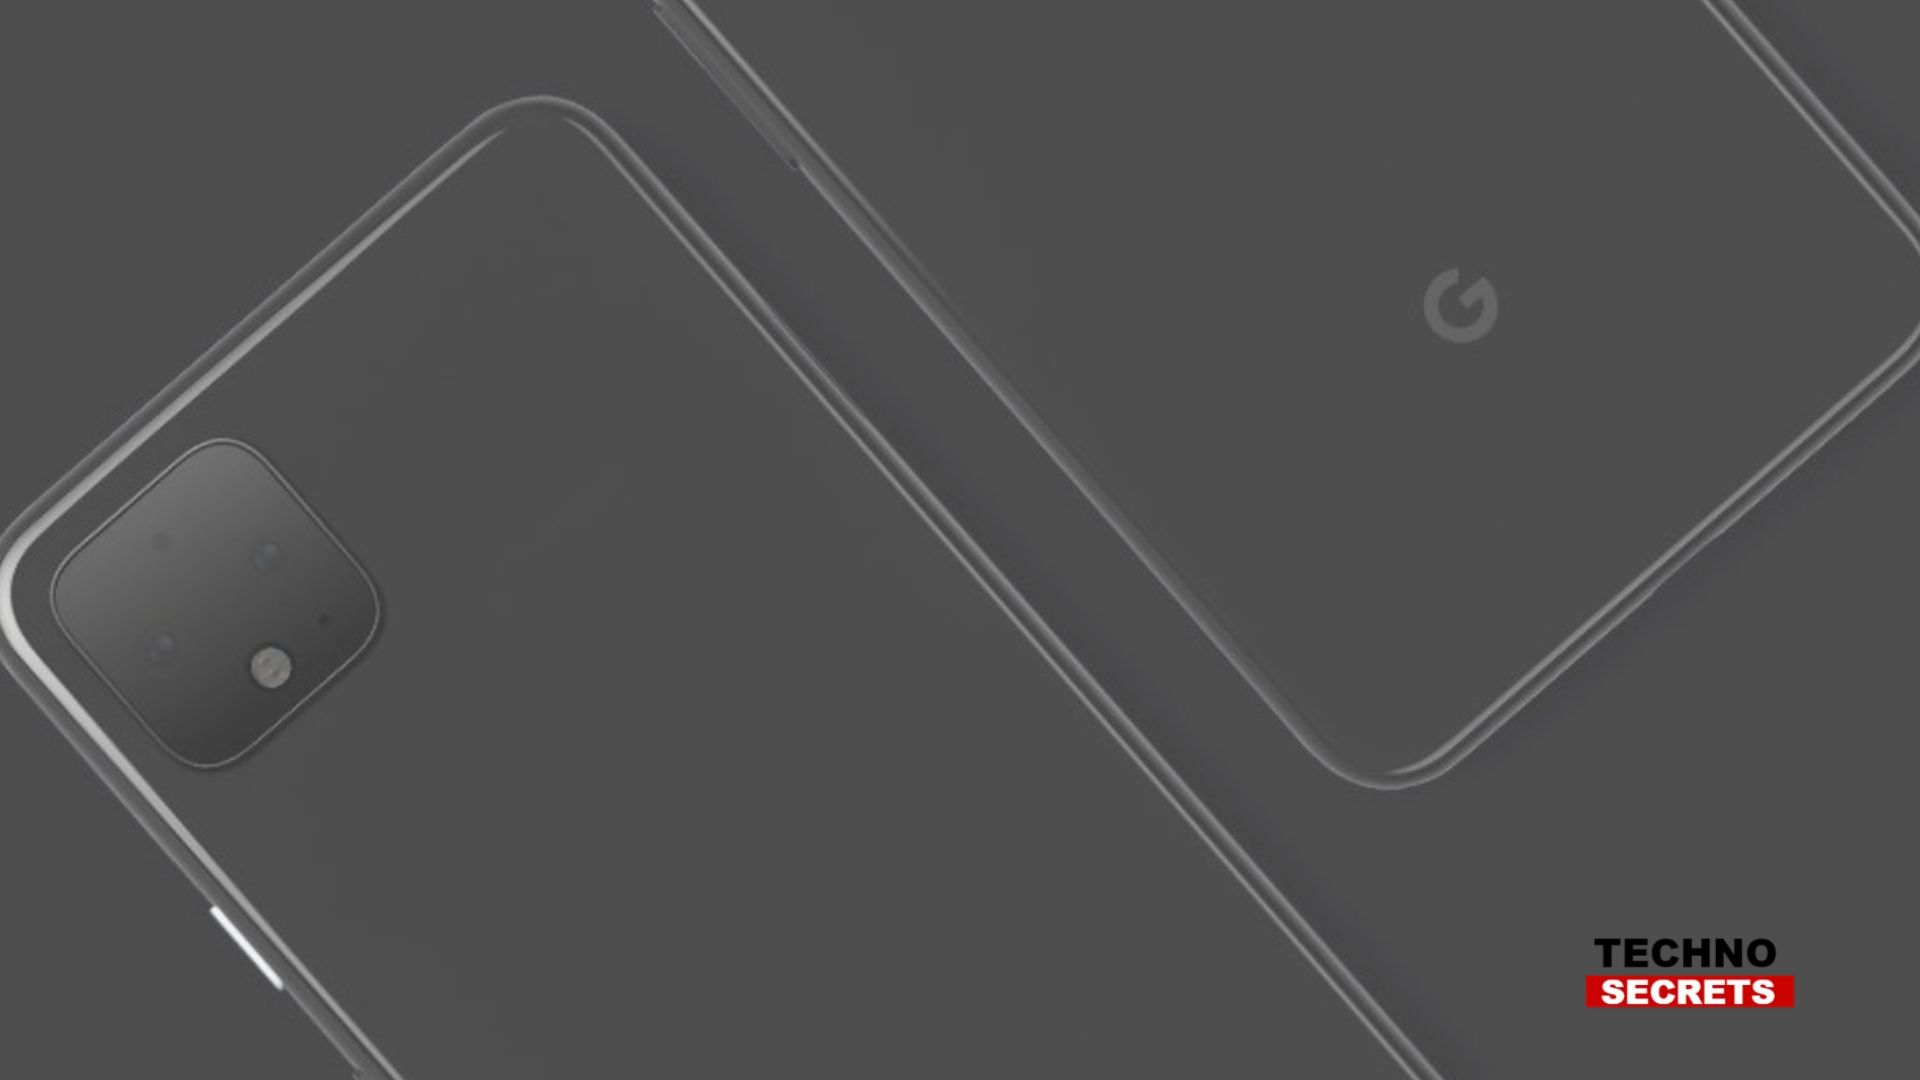 Google Pixel 4 Images Leaked_ Shows a Square Camera Module